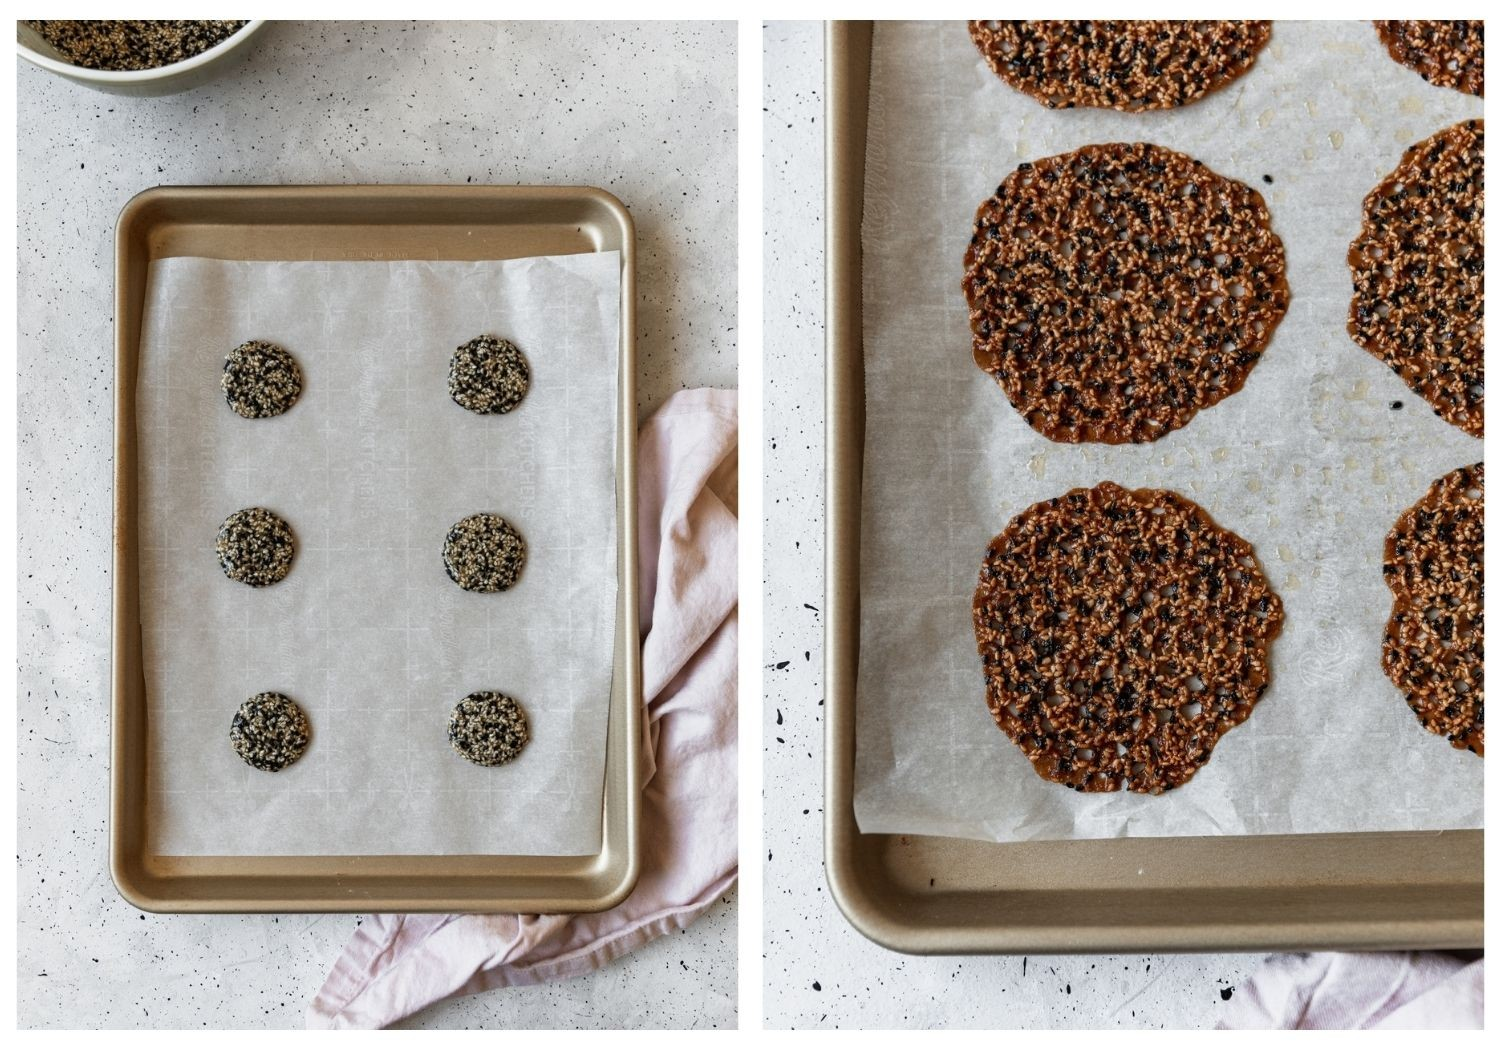 Two overhead images; on the left, a sheetpan is filled with balls of cookie dough. On the right is a closeup of baked Florentine cookies.